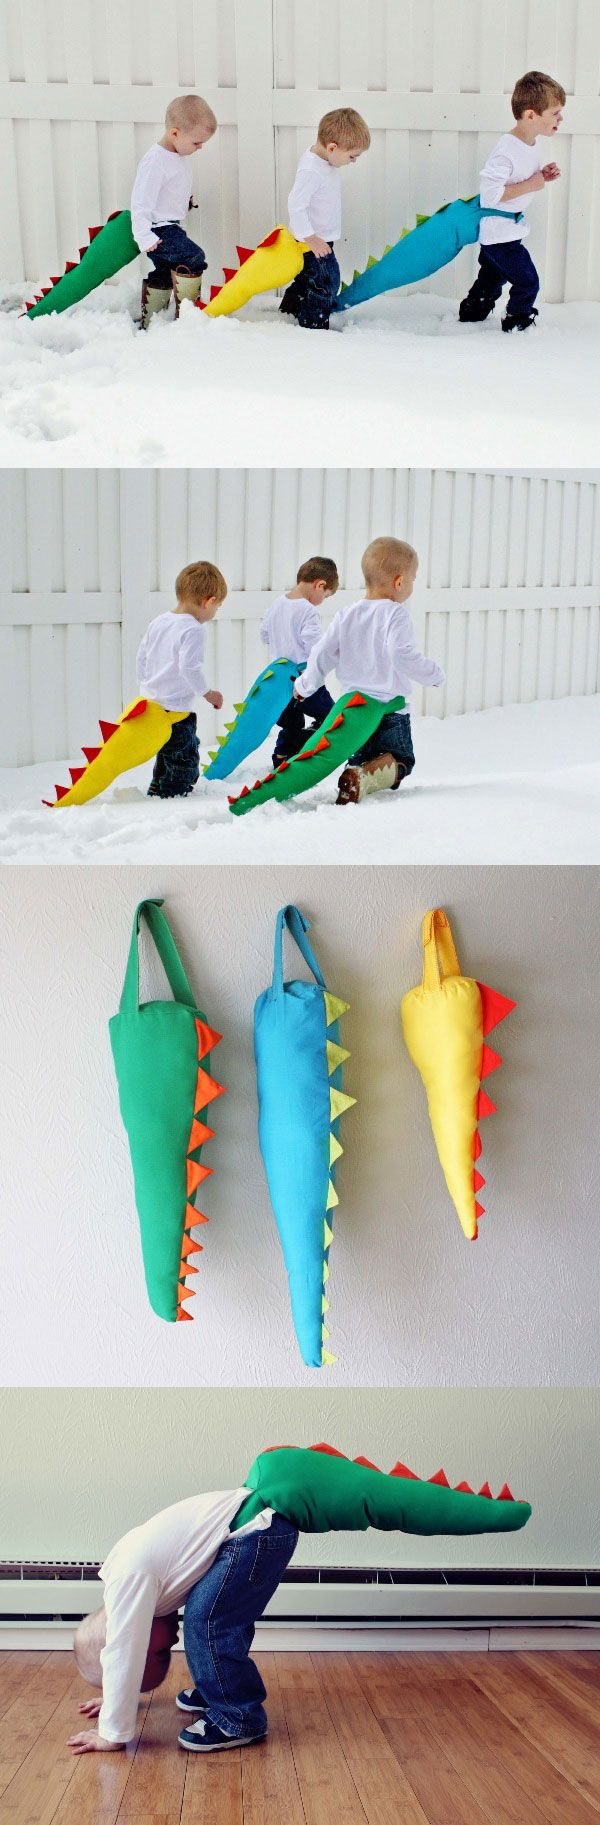 Dino-tails: could do this for lots of animals! I die of cuteness